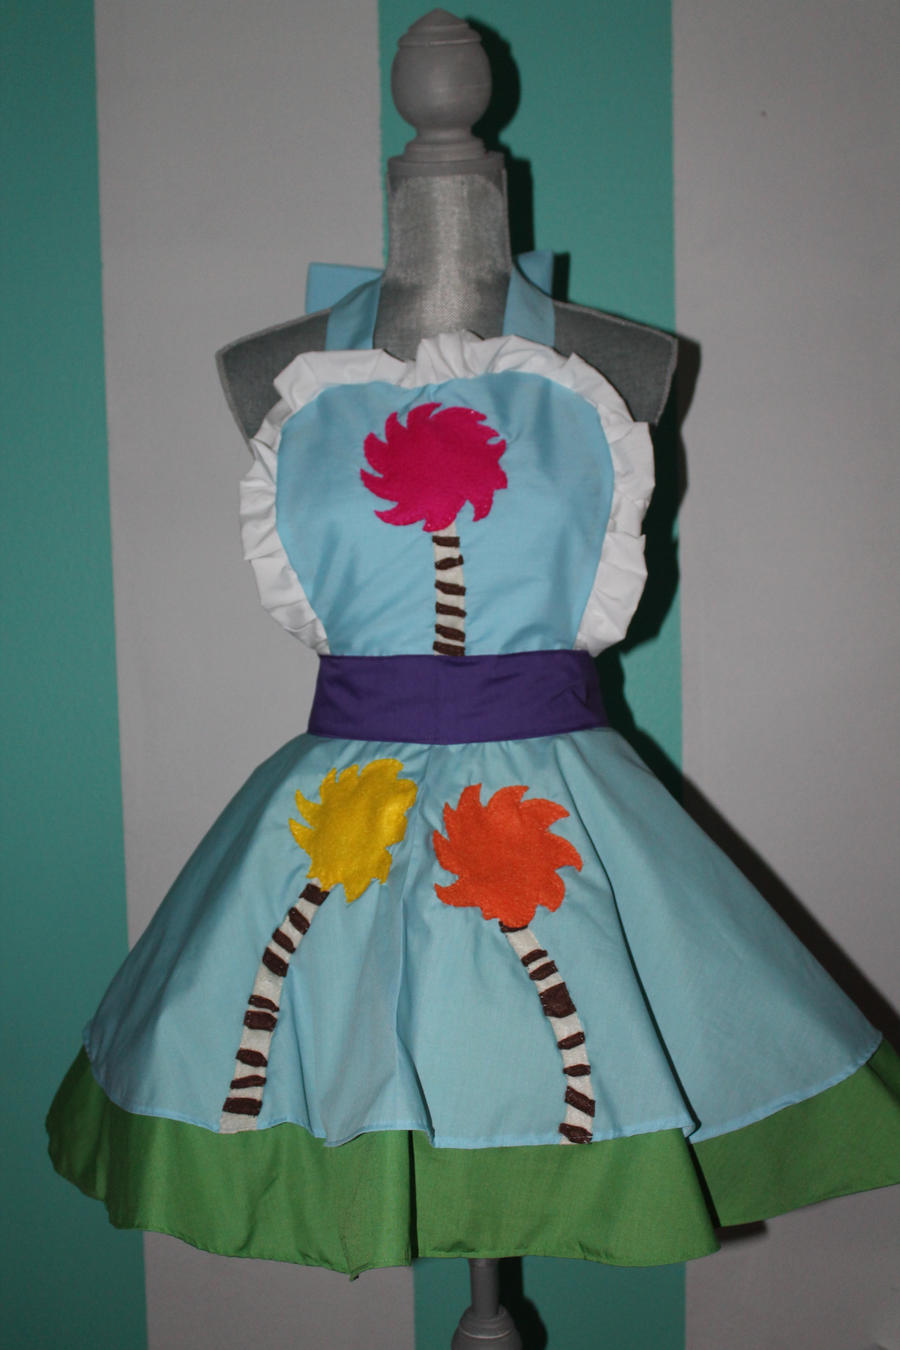 Truffula Tree - The Lorax - Cosplay Pinafore by DarlingArmy